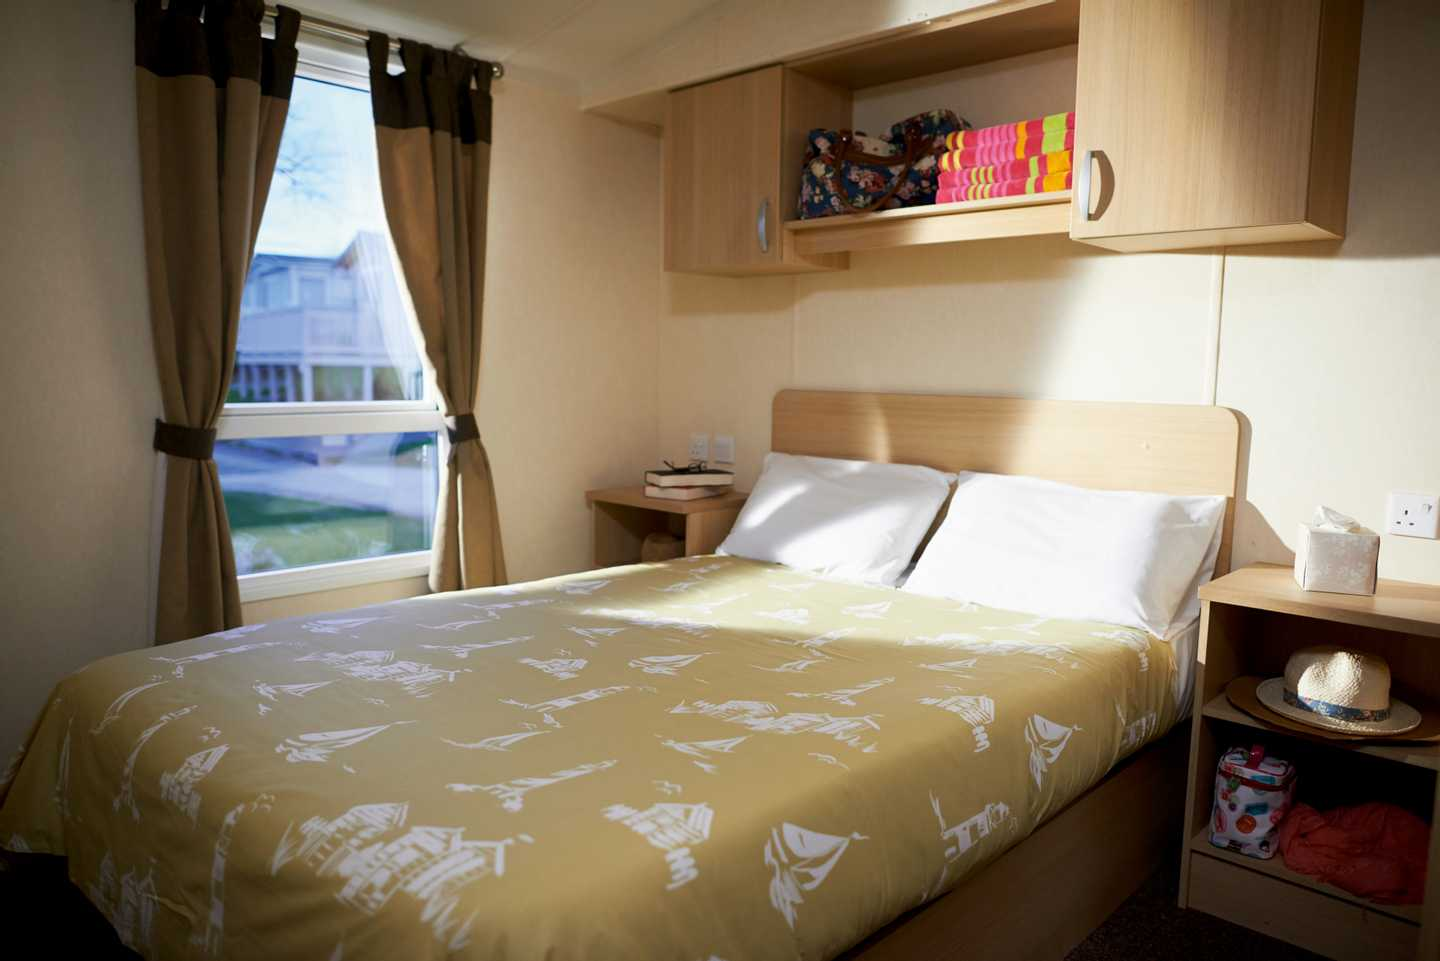 A Deluxe caravan master bedroom with a double bed, two bedside cabinets and overhead storage